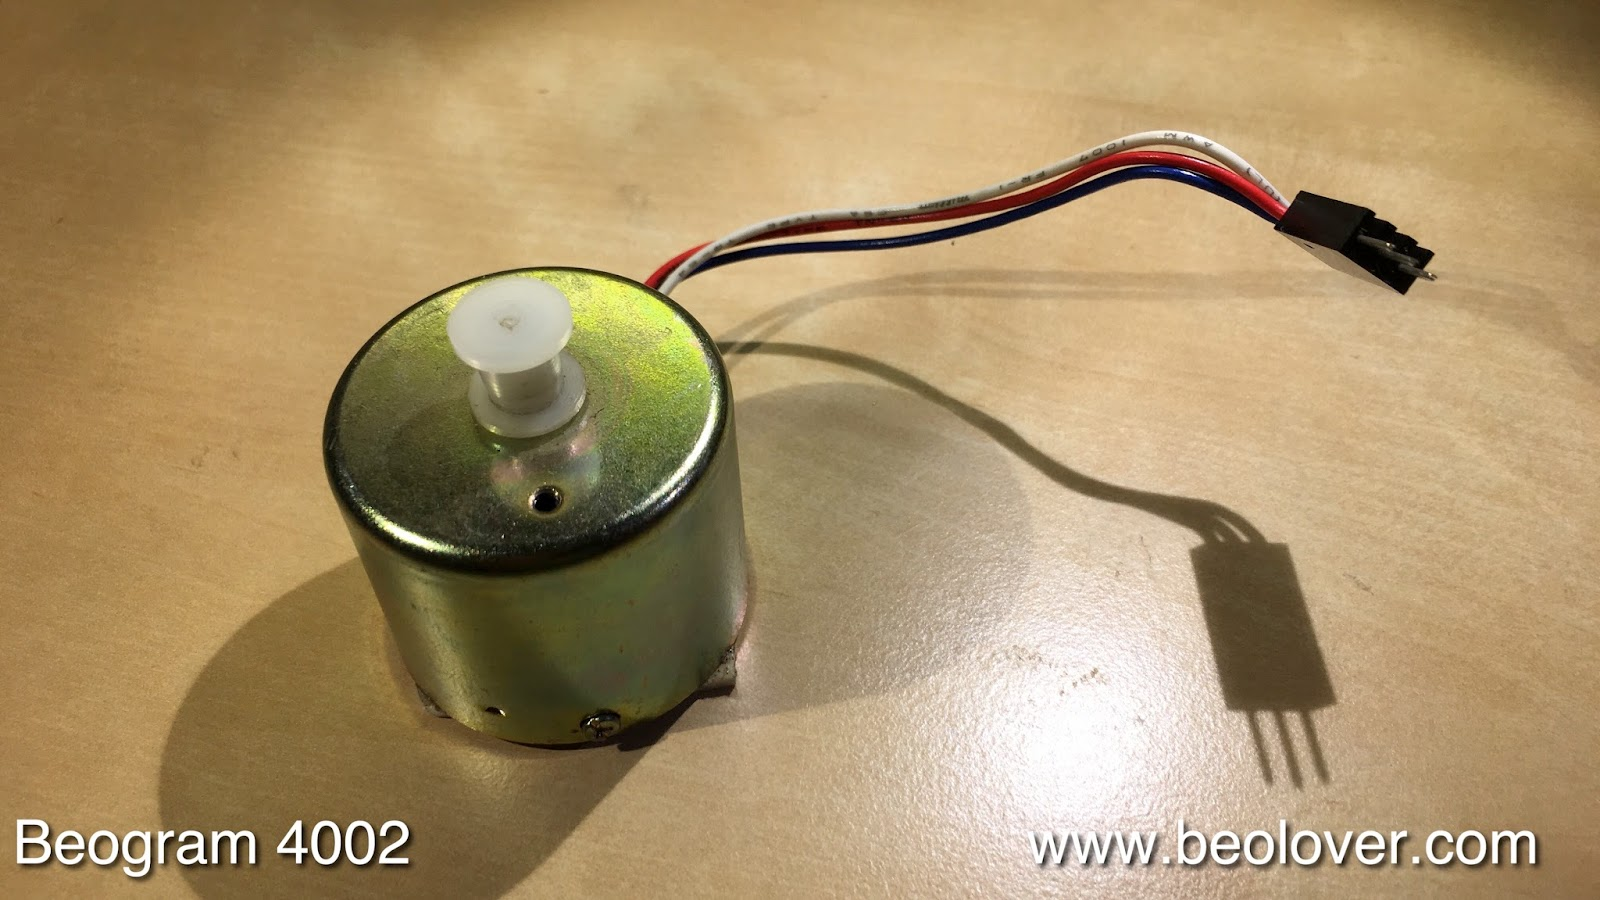 Beolover Beogram 4002 Dc Motor Restoration Oil Infusion